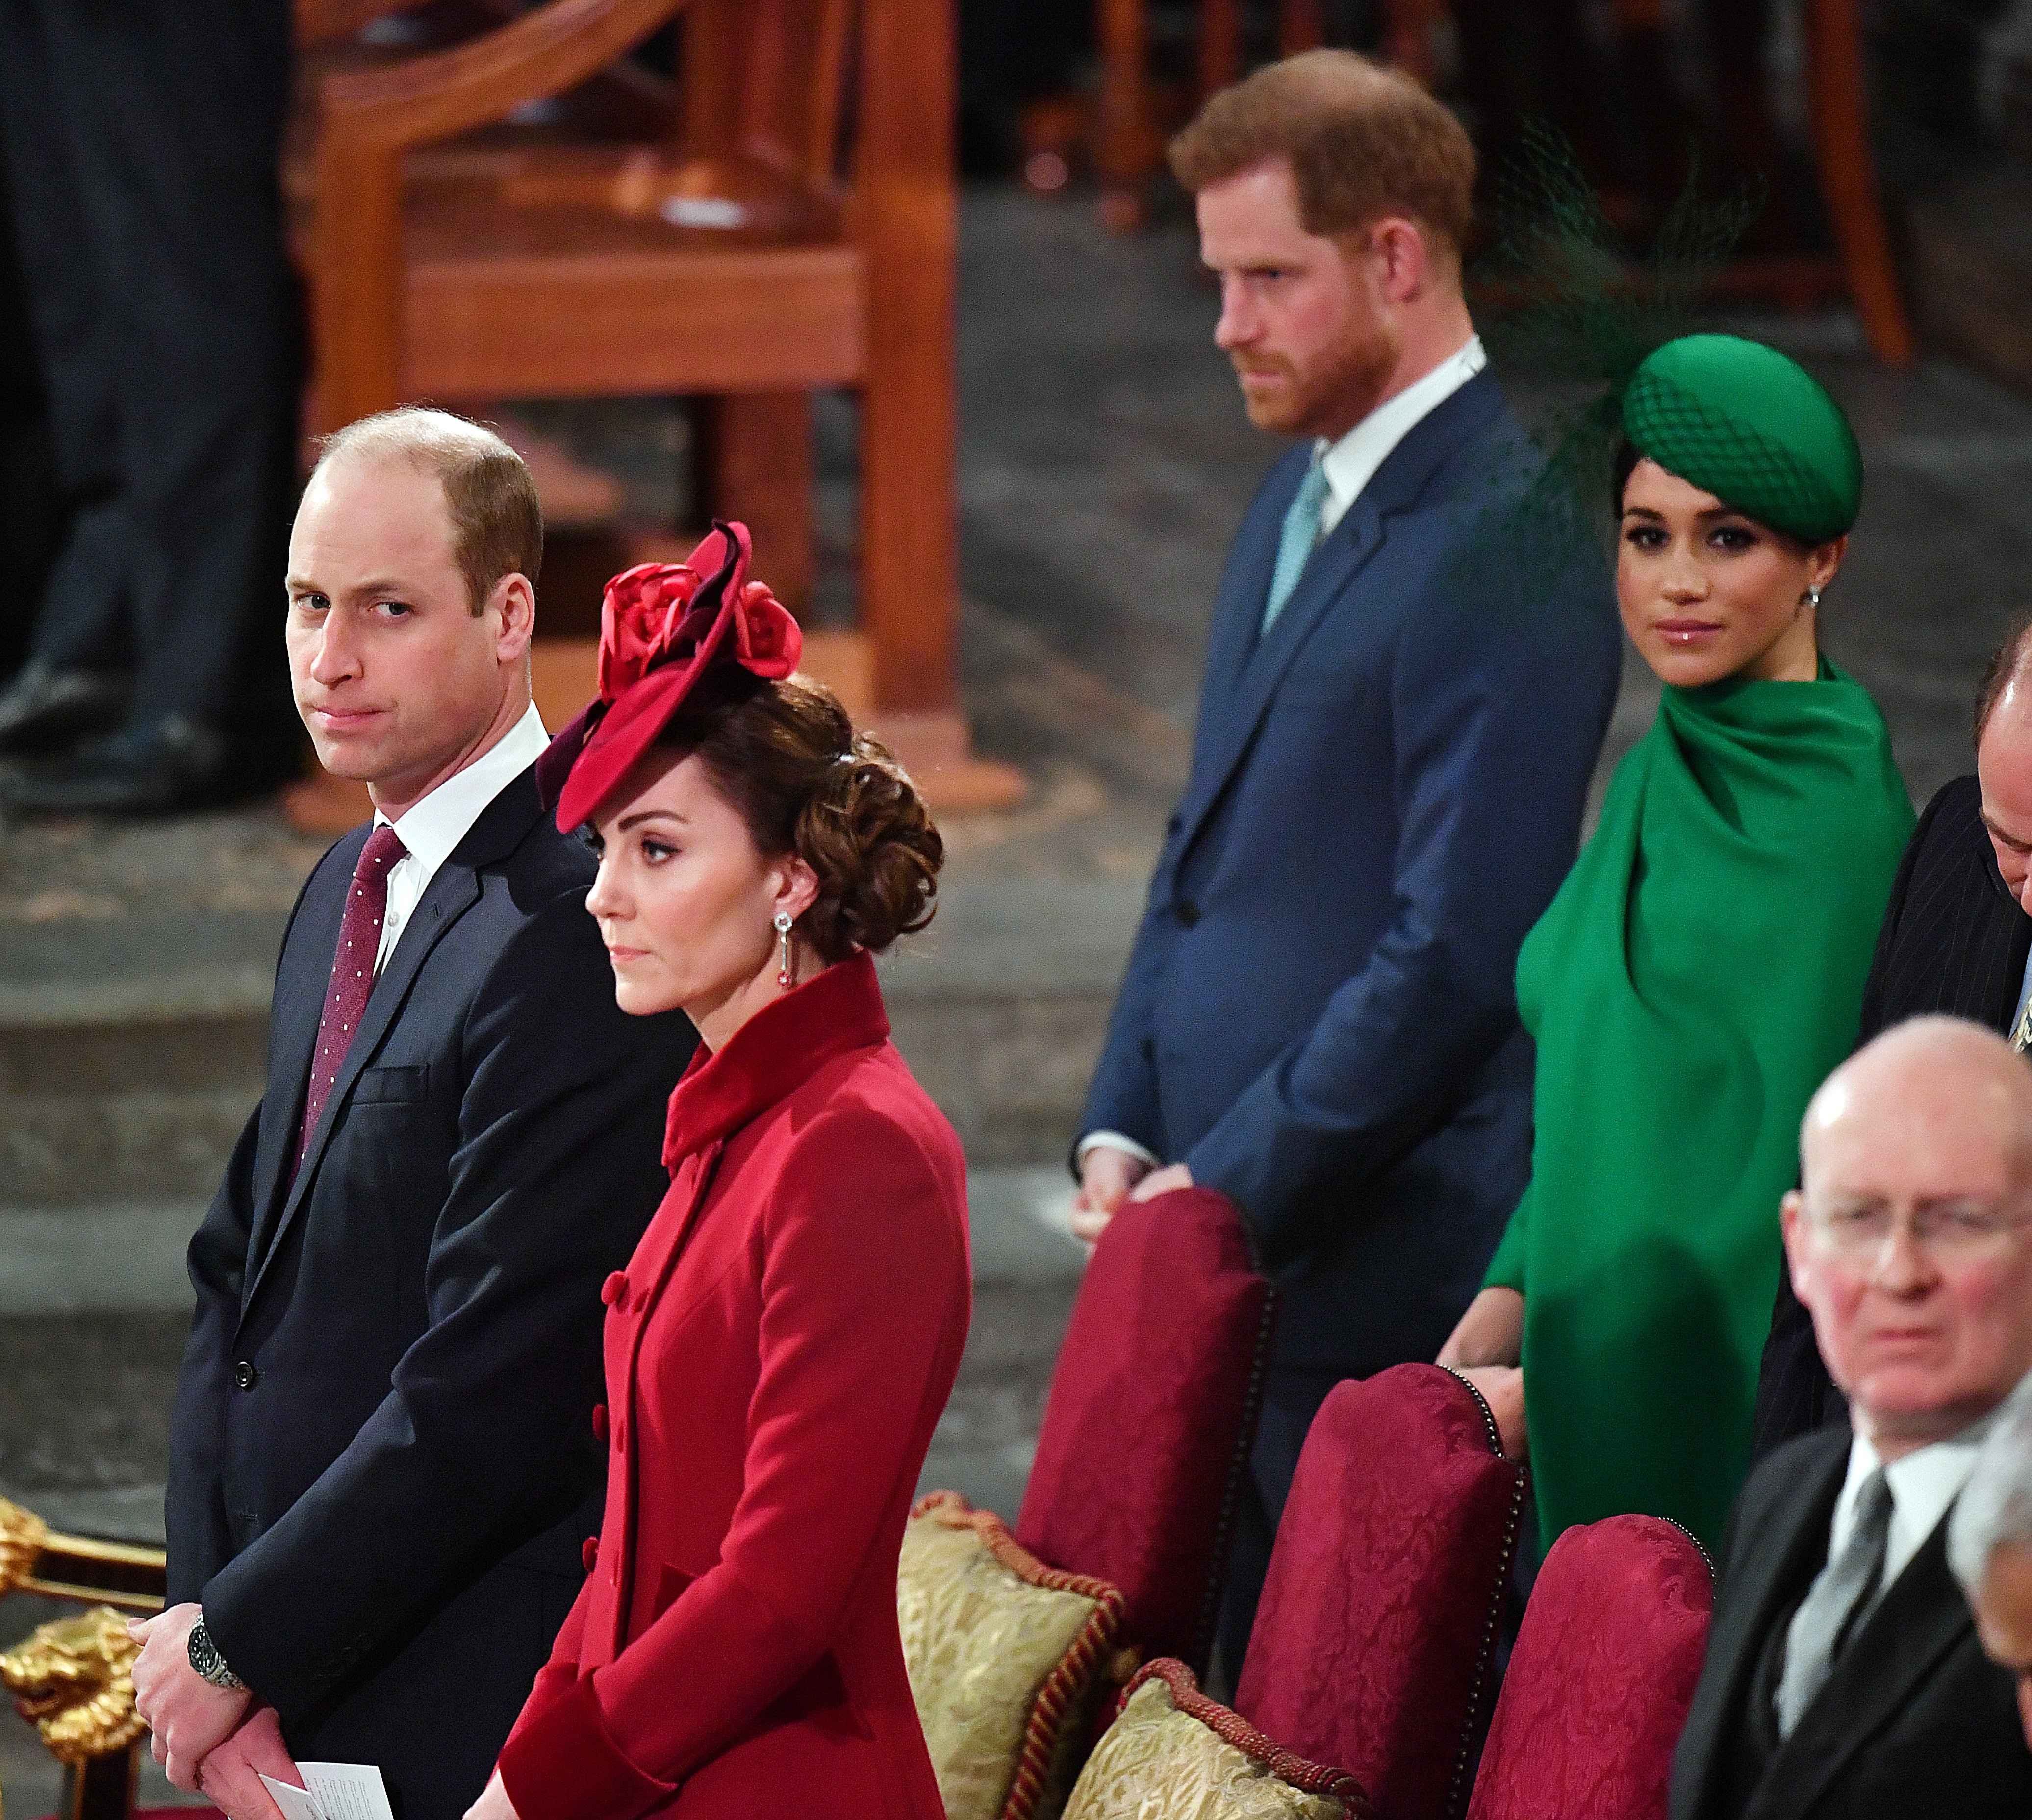 Prince William, Kate Middleton, Prince Harry, and Meghan Markle attend the Commonwealth Day Service 2020 on March 9, 2020 in London, England | Photo: Getty Images